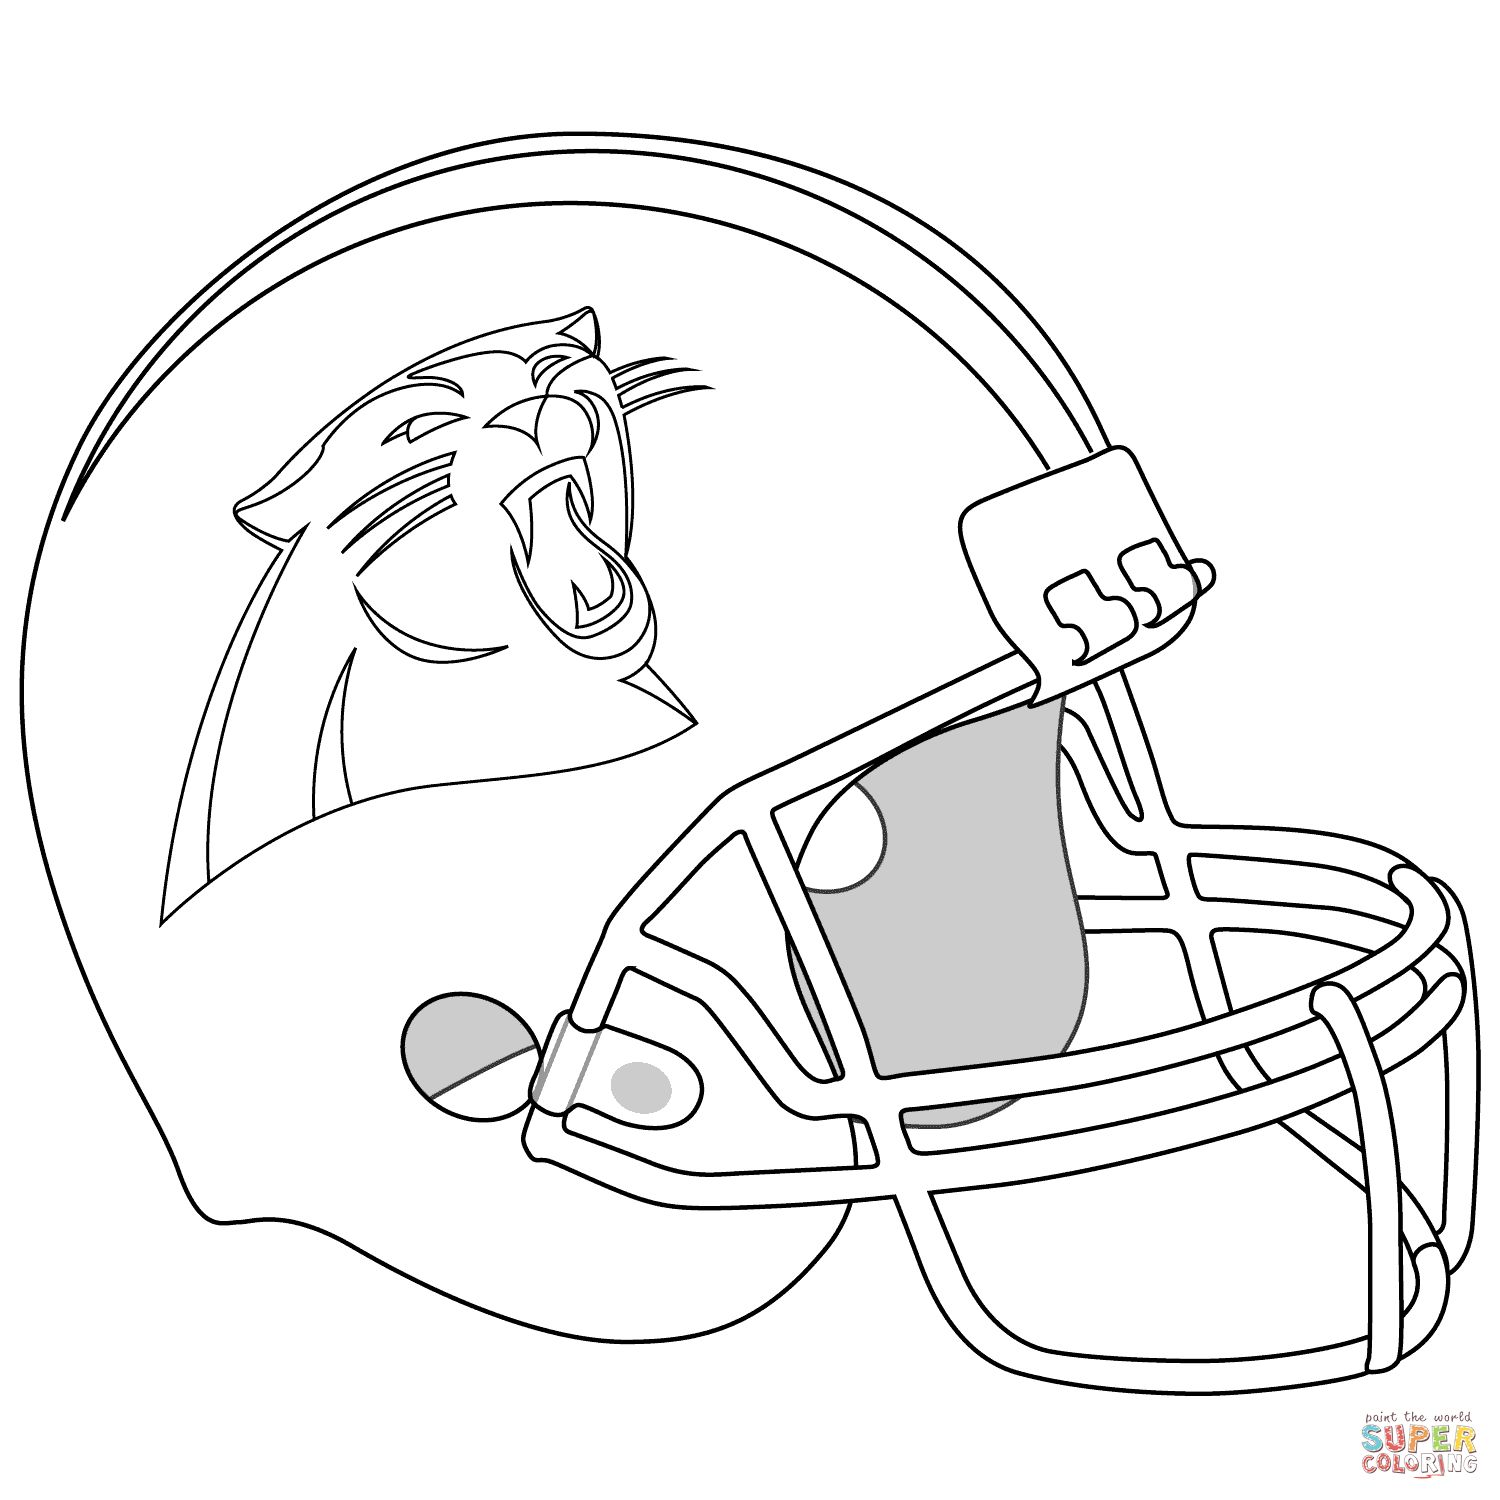 1500x1500 Carolina Panthers Helmet Coloring Page On Panthers Coloring Pages